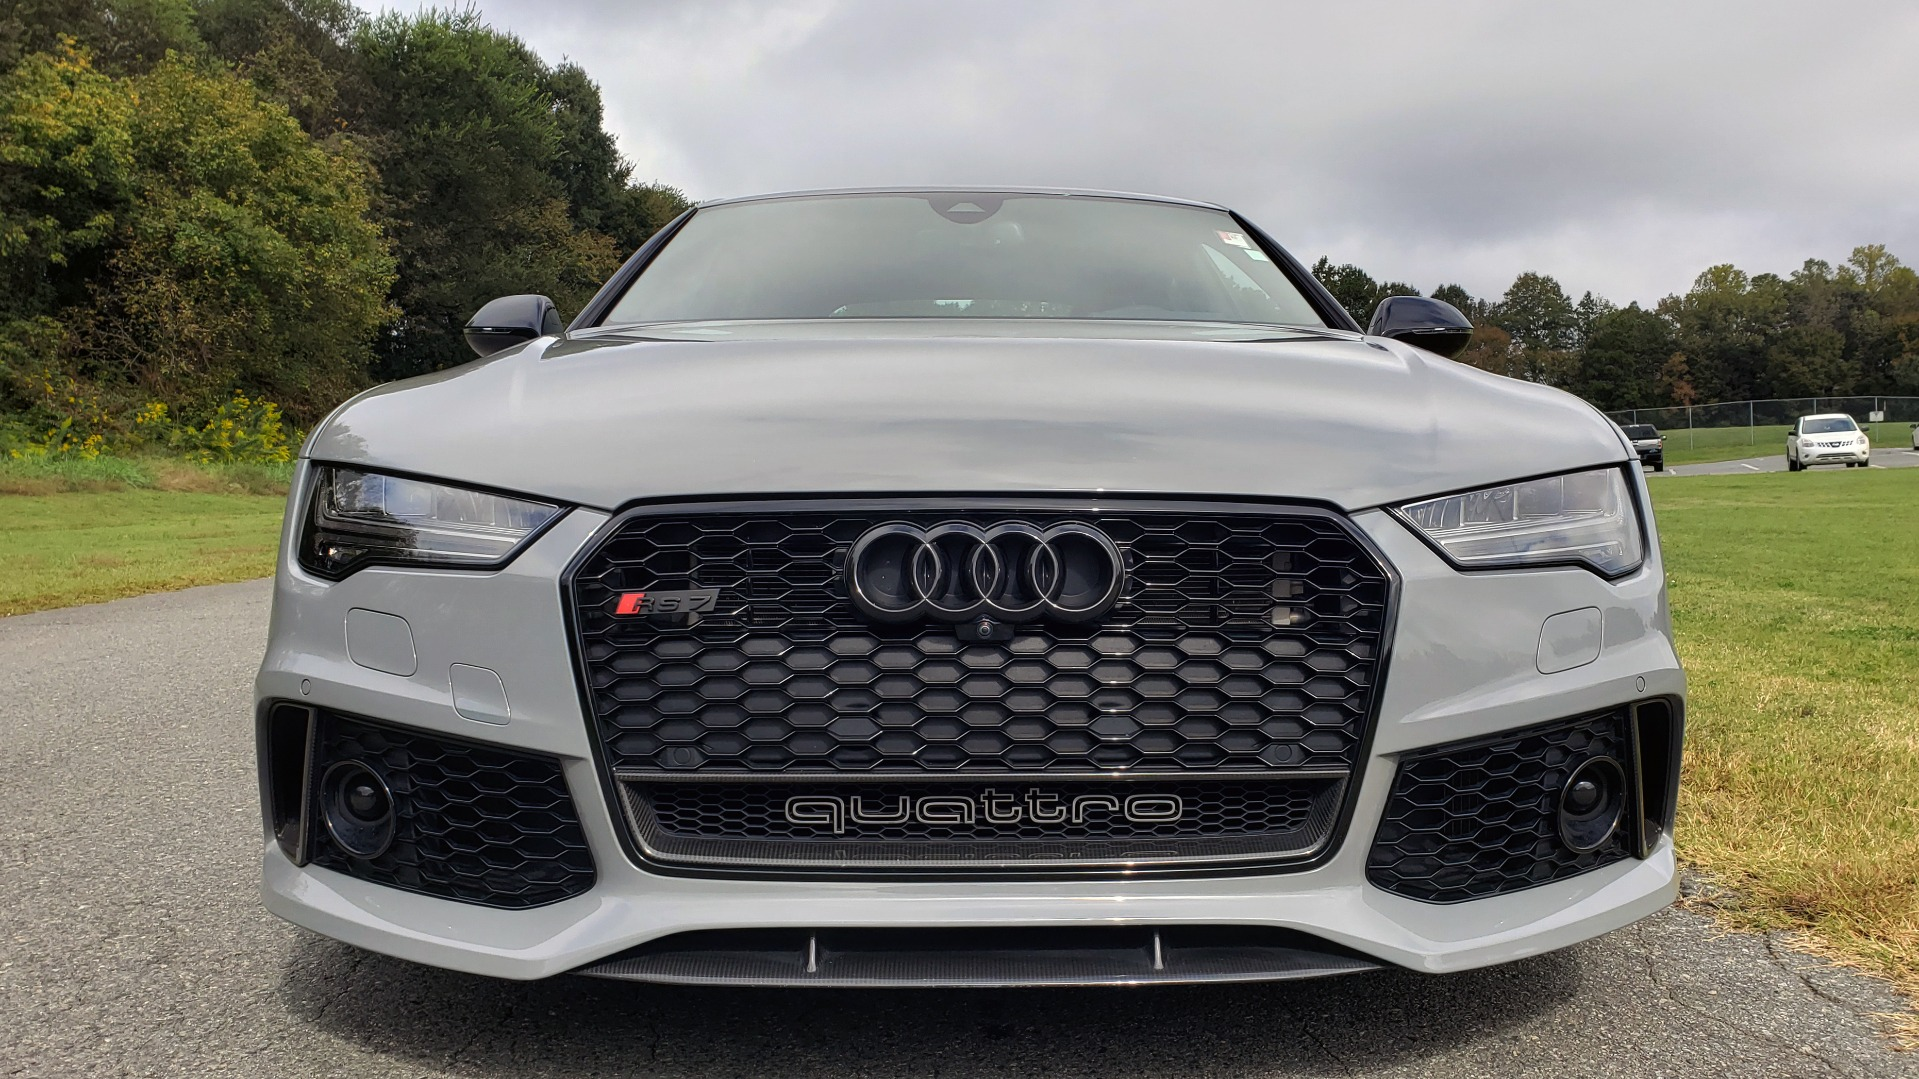 Used 2018 Audi RS 7 4.0T TIPTRONIC / CARBON OPTIC / DRVR ASST / NAV / REARVIEW / 750HP+ for sale Sold at Formula Imports in Charlotte NC 28227 11